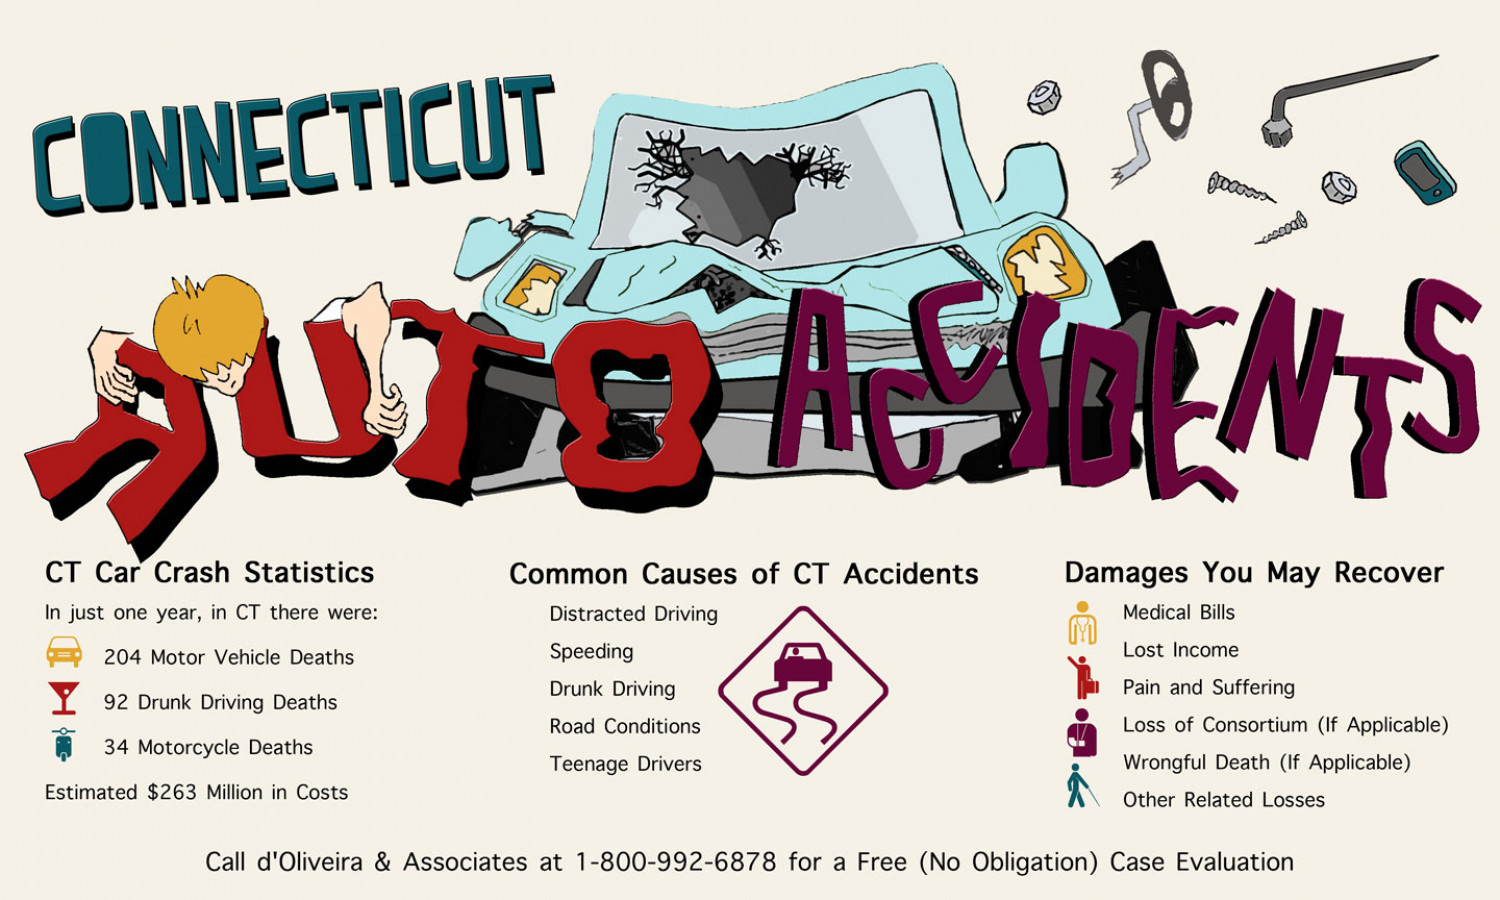 Connecticut Auto Accidents Infographic